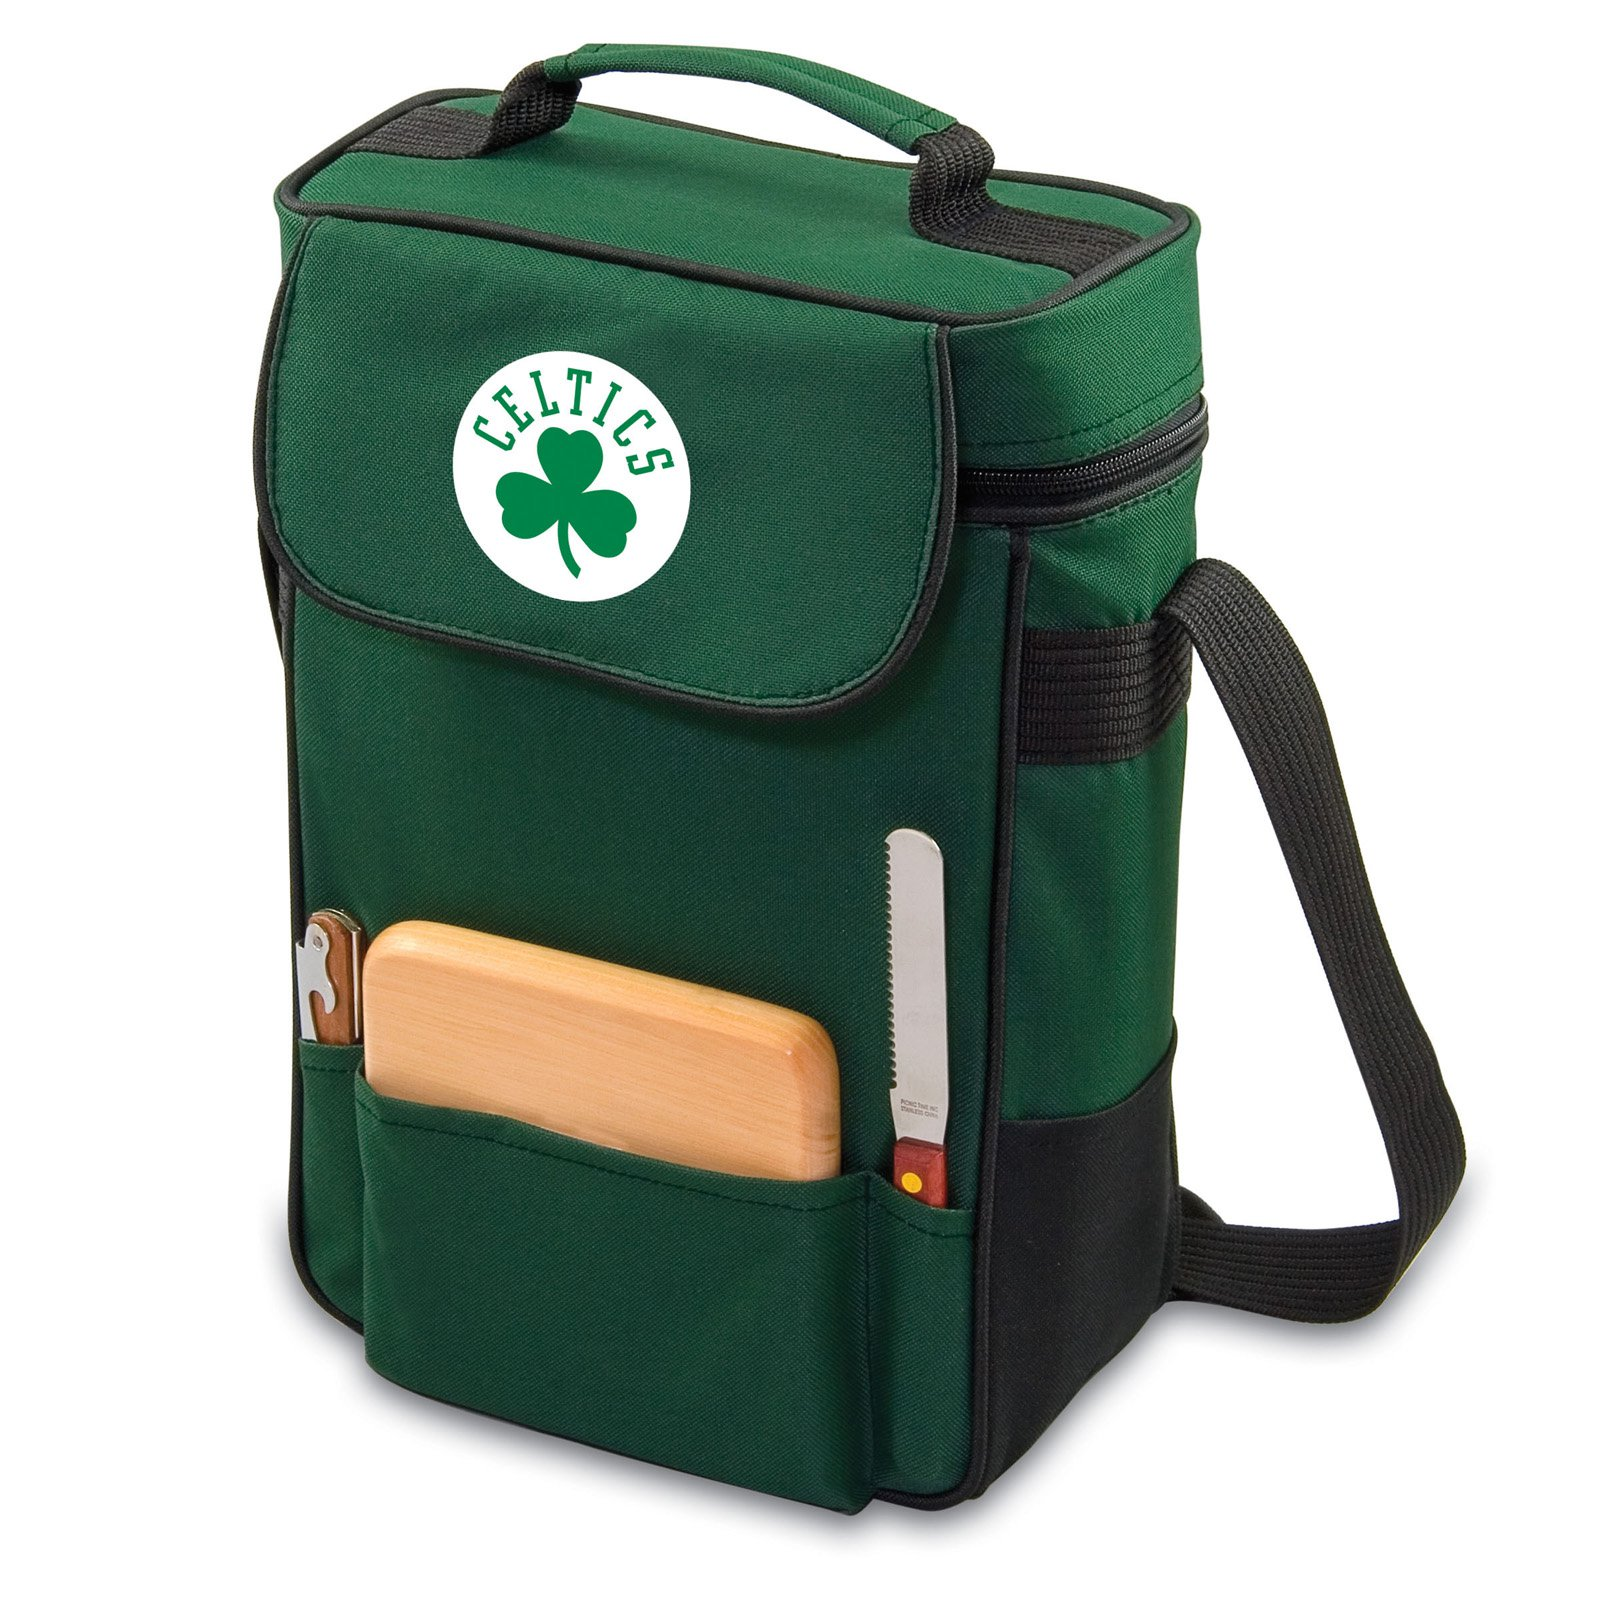 LEGACY 12 Can Duet Picnic Cooler